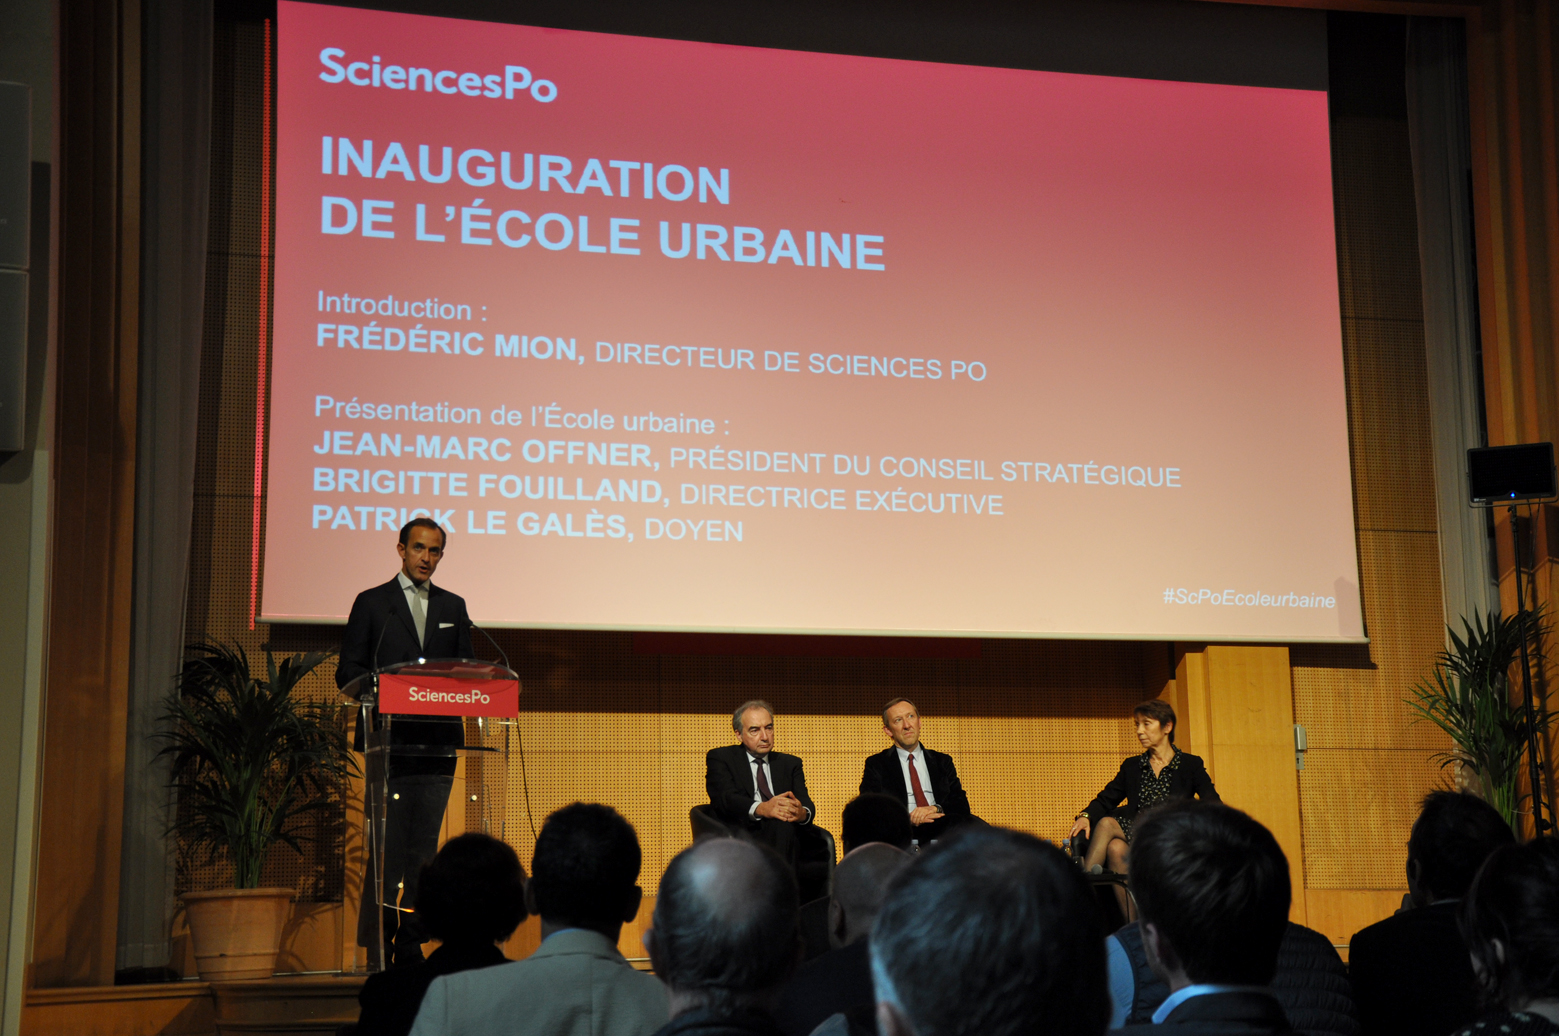 Sciences Po, Paris, France presentation. Inauguration de l'ecole urbaine